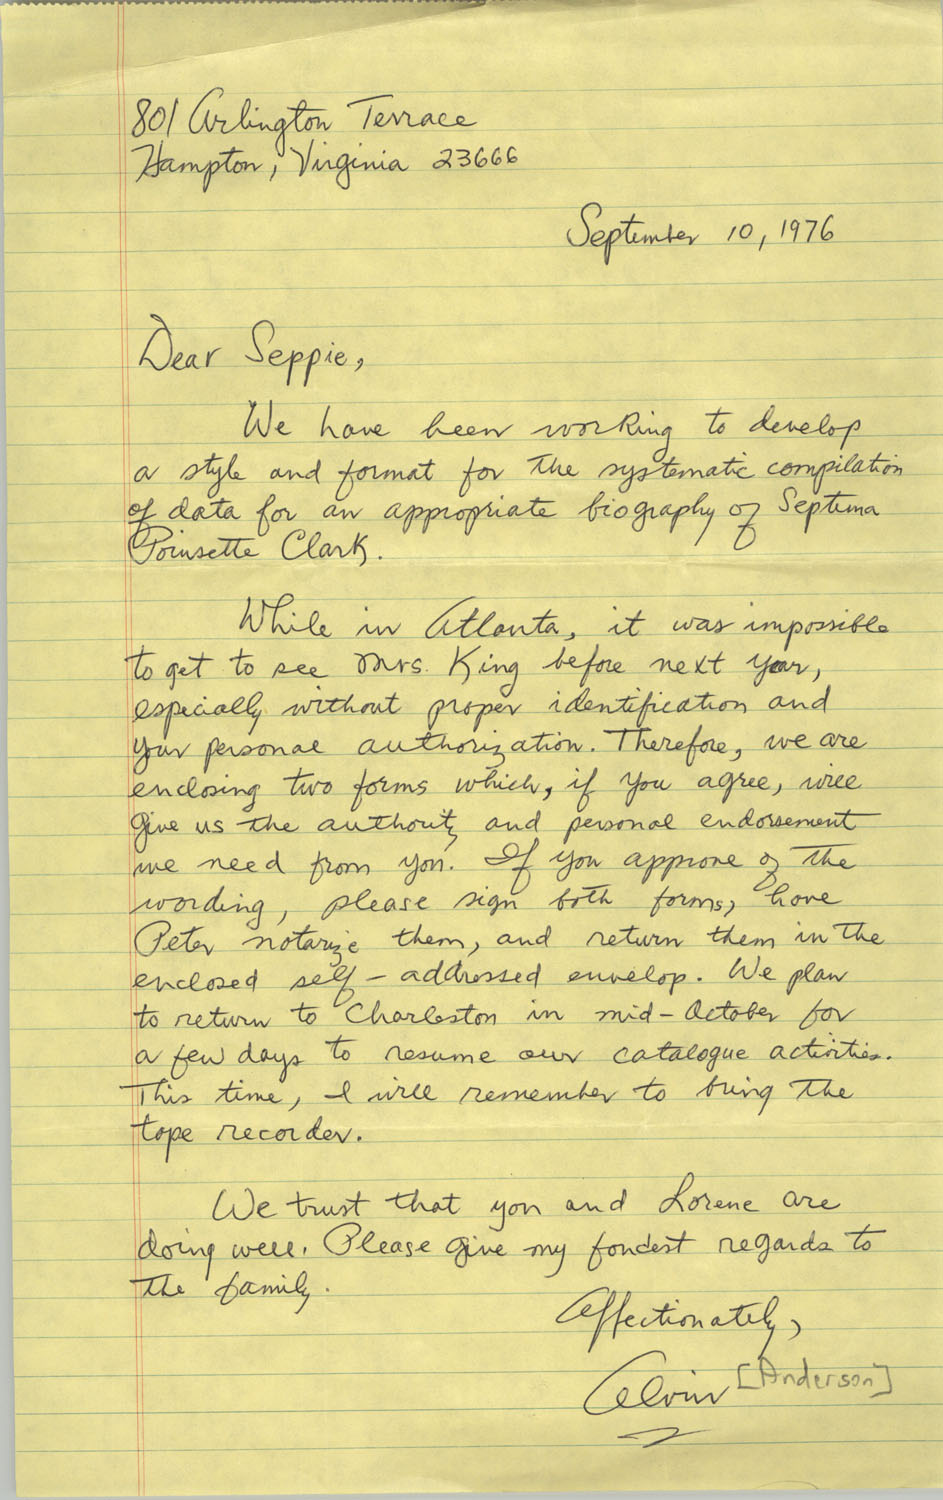 Letter from Alvin Anderson to Septima P. Clark, September 10, 1976